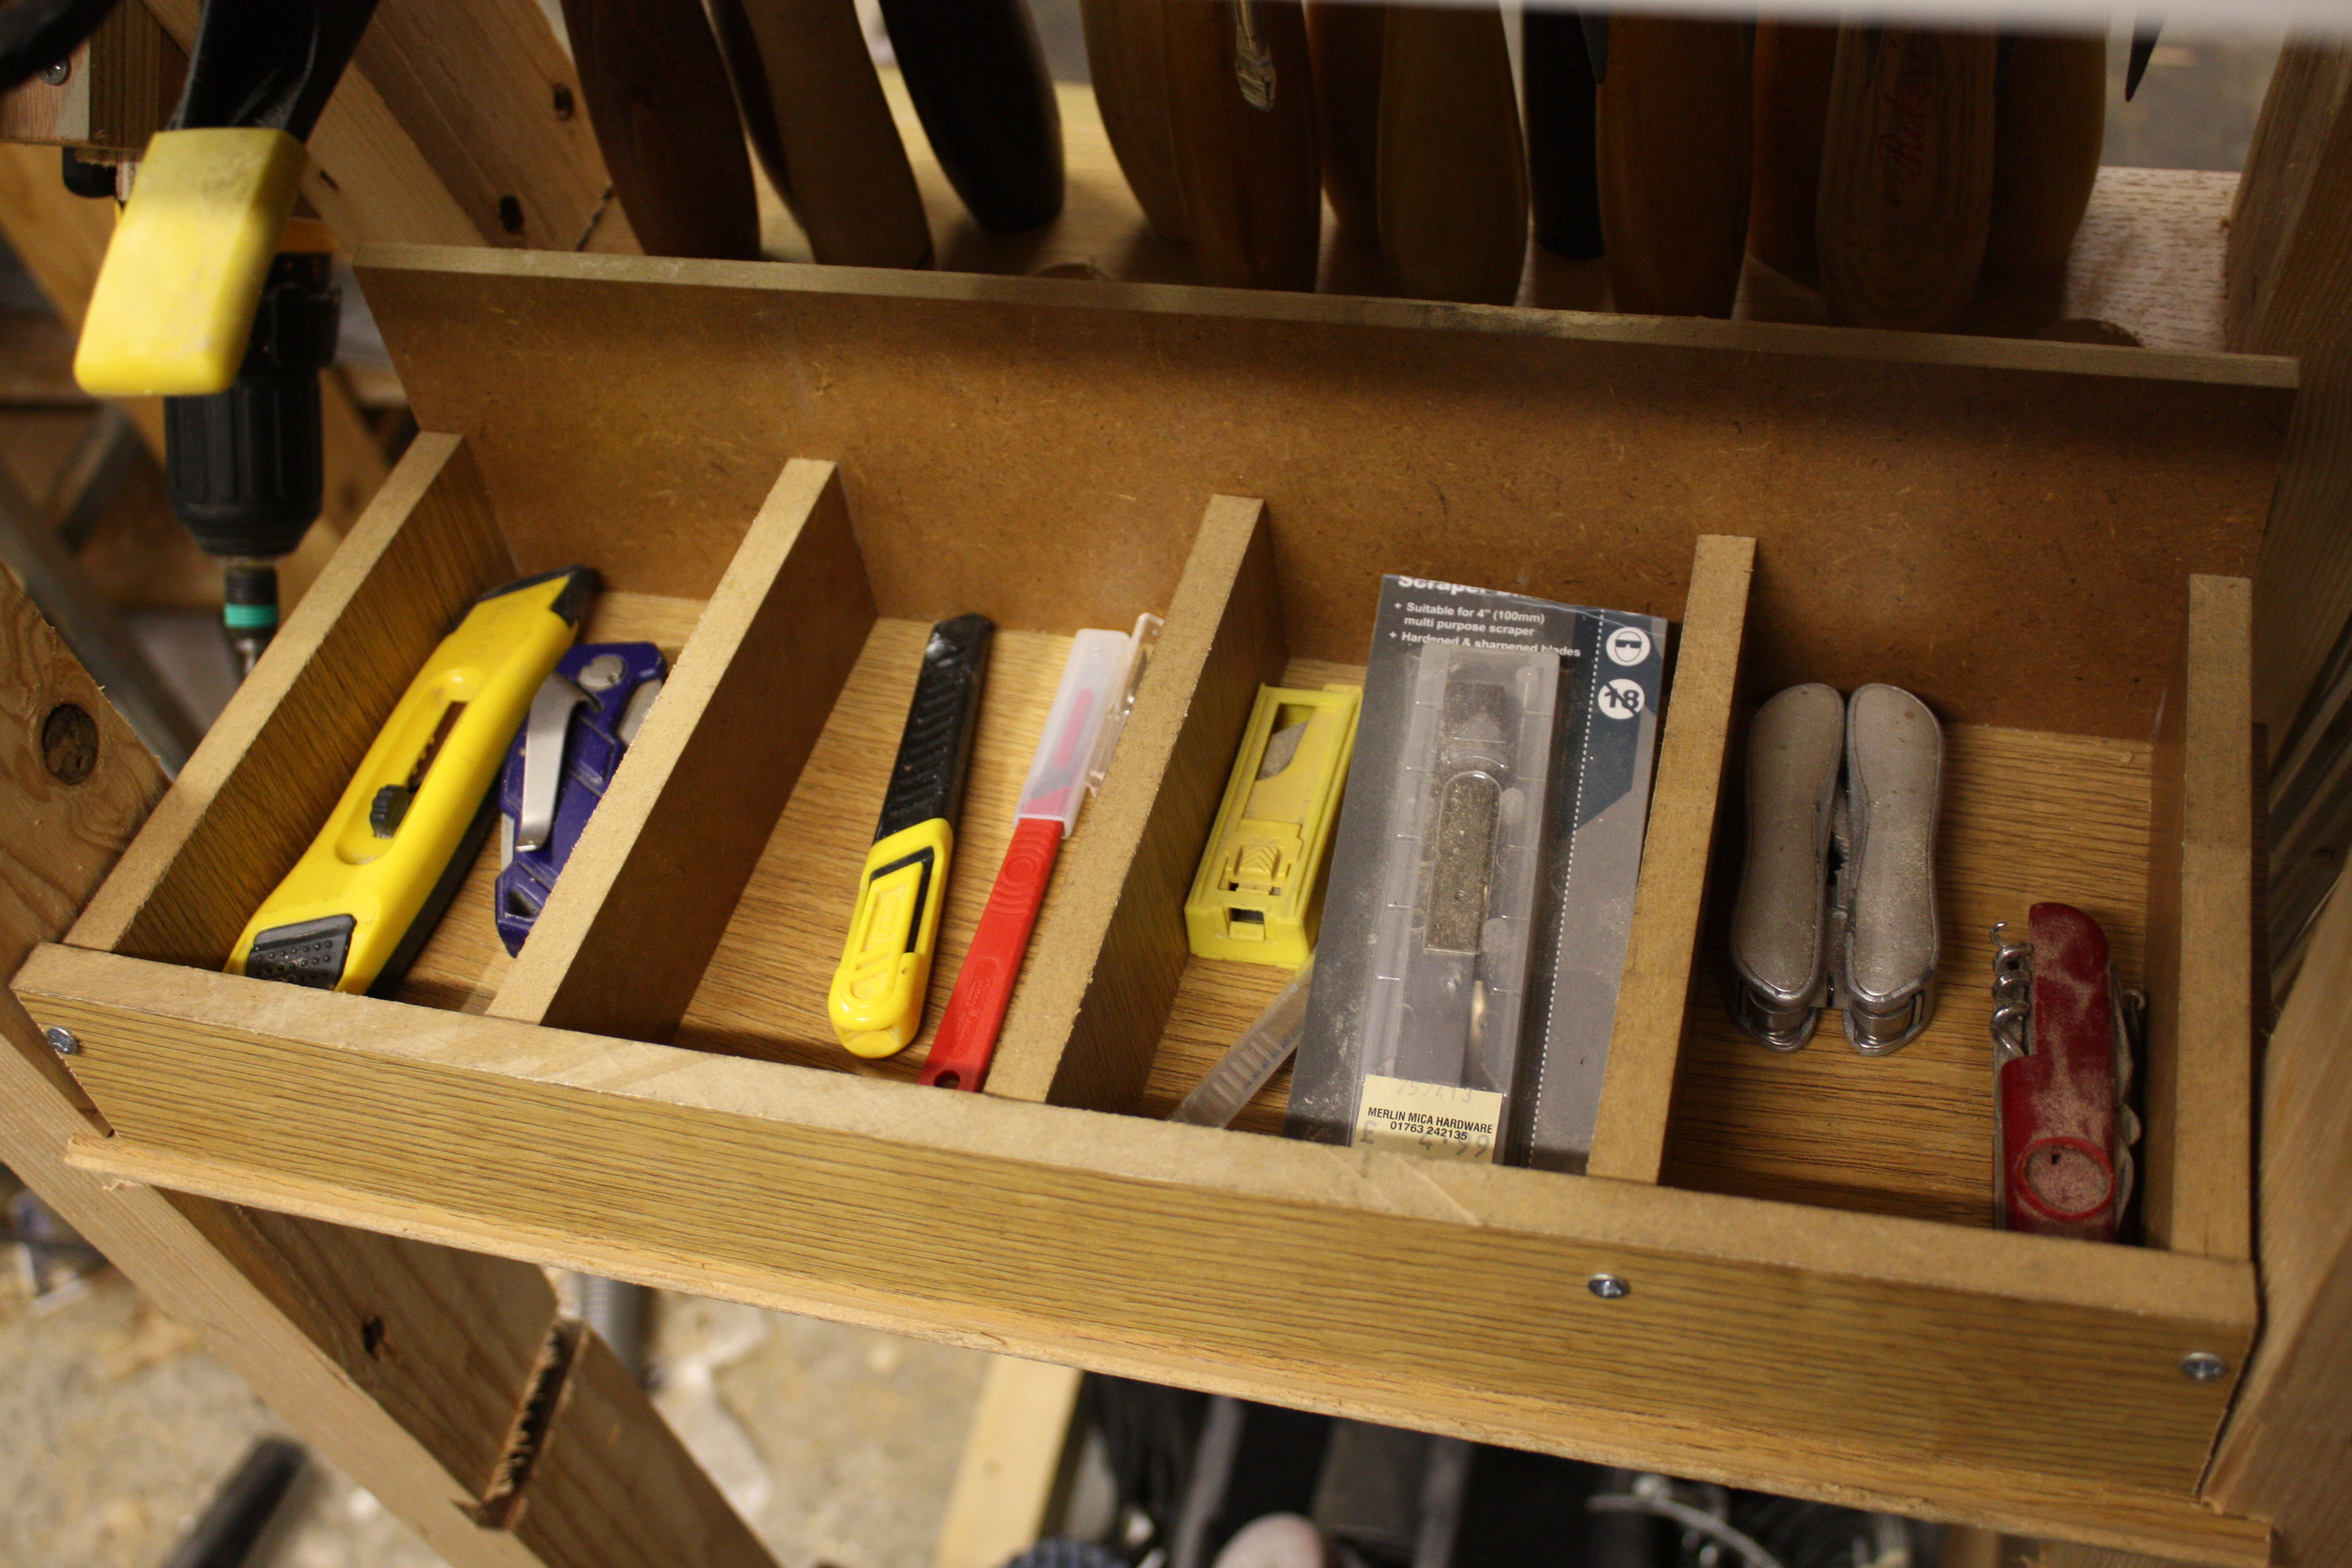 Rear storage for box cutters/craft knives, multi tools etc